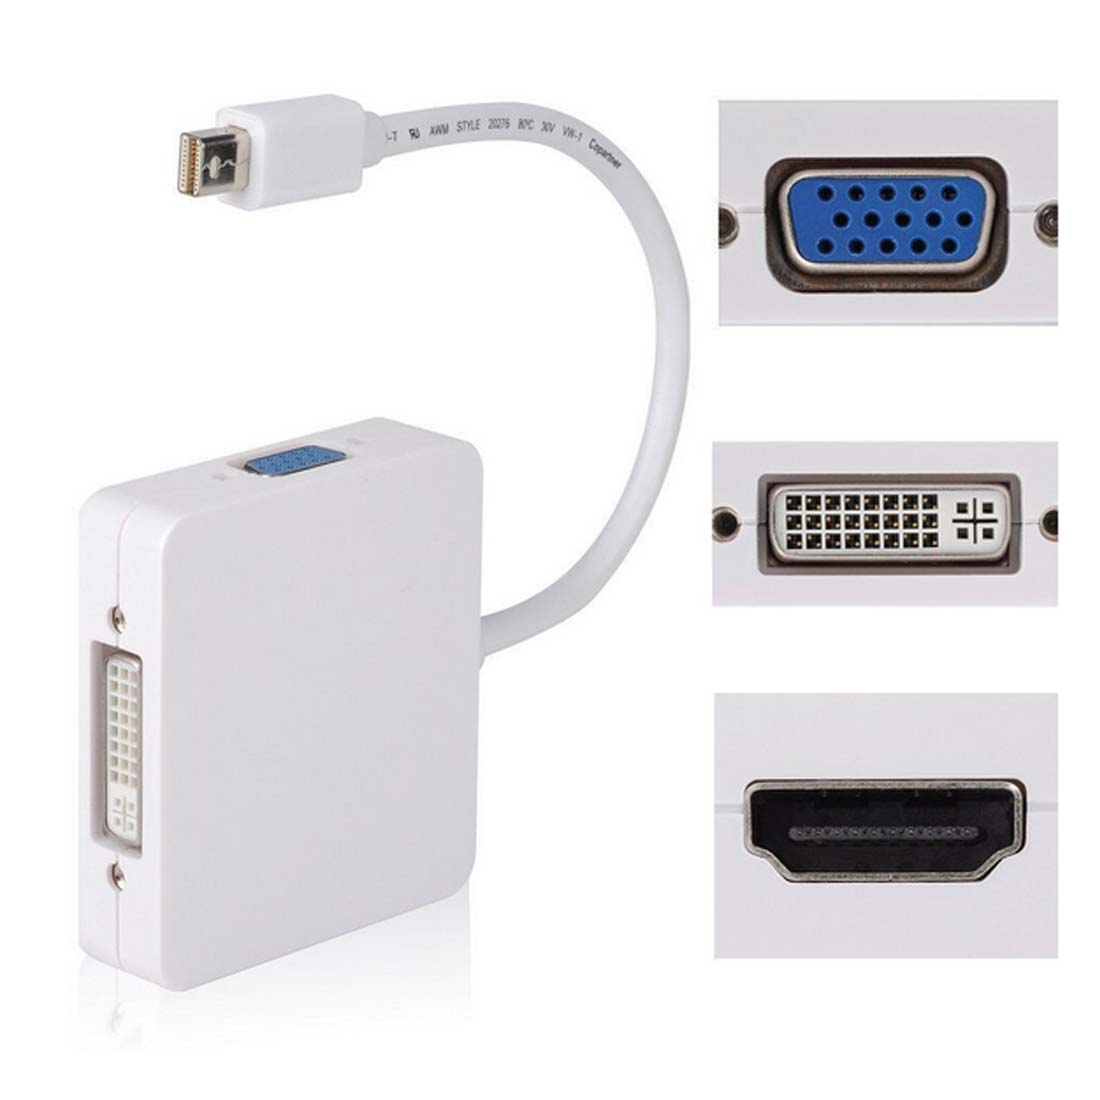 NEW 3 in1 Thunderbolt Mini Displayport DP to HDMI DVI VGA Adapter Display port Cable for apple MacBook Pro Mac Book Air 2 in 1 display port cable to hdmi adapter mini dp to 2dp hub cable connector mdd170 mdp to dp 1 2 version for hd video